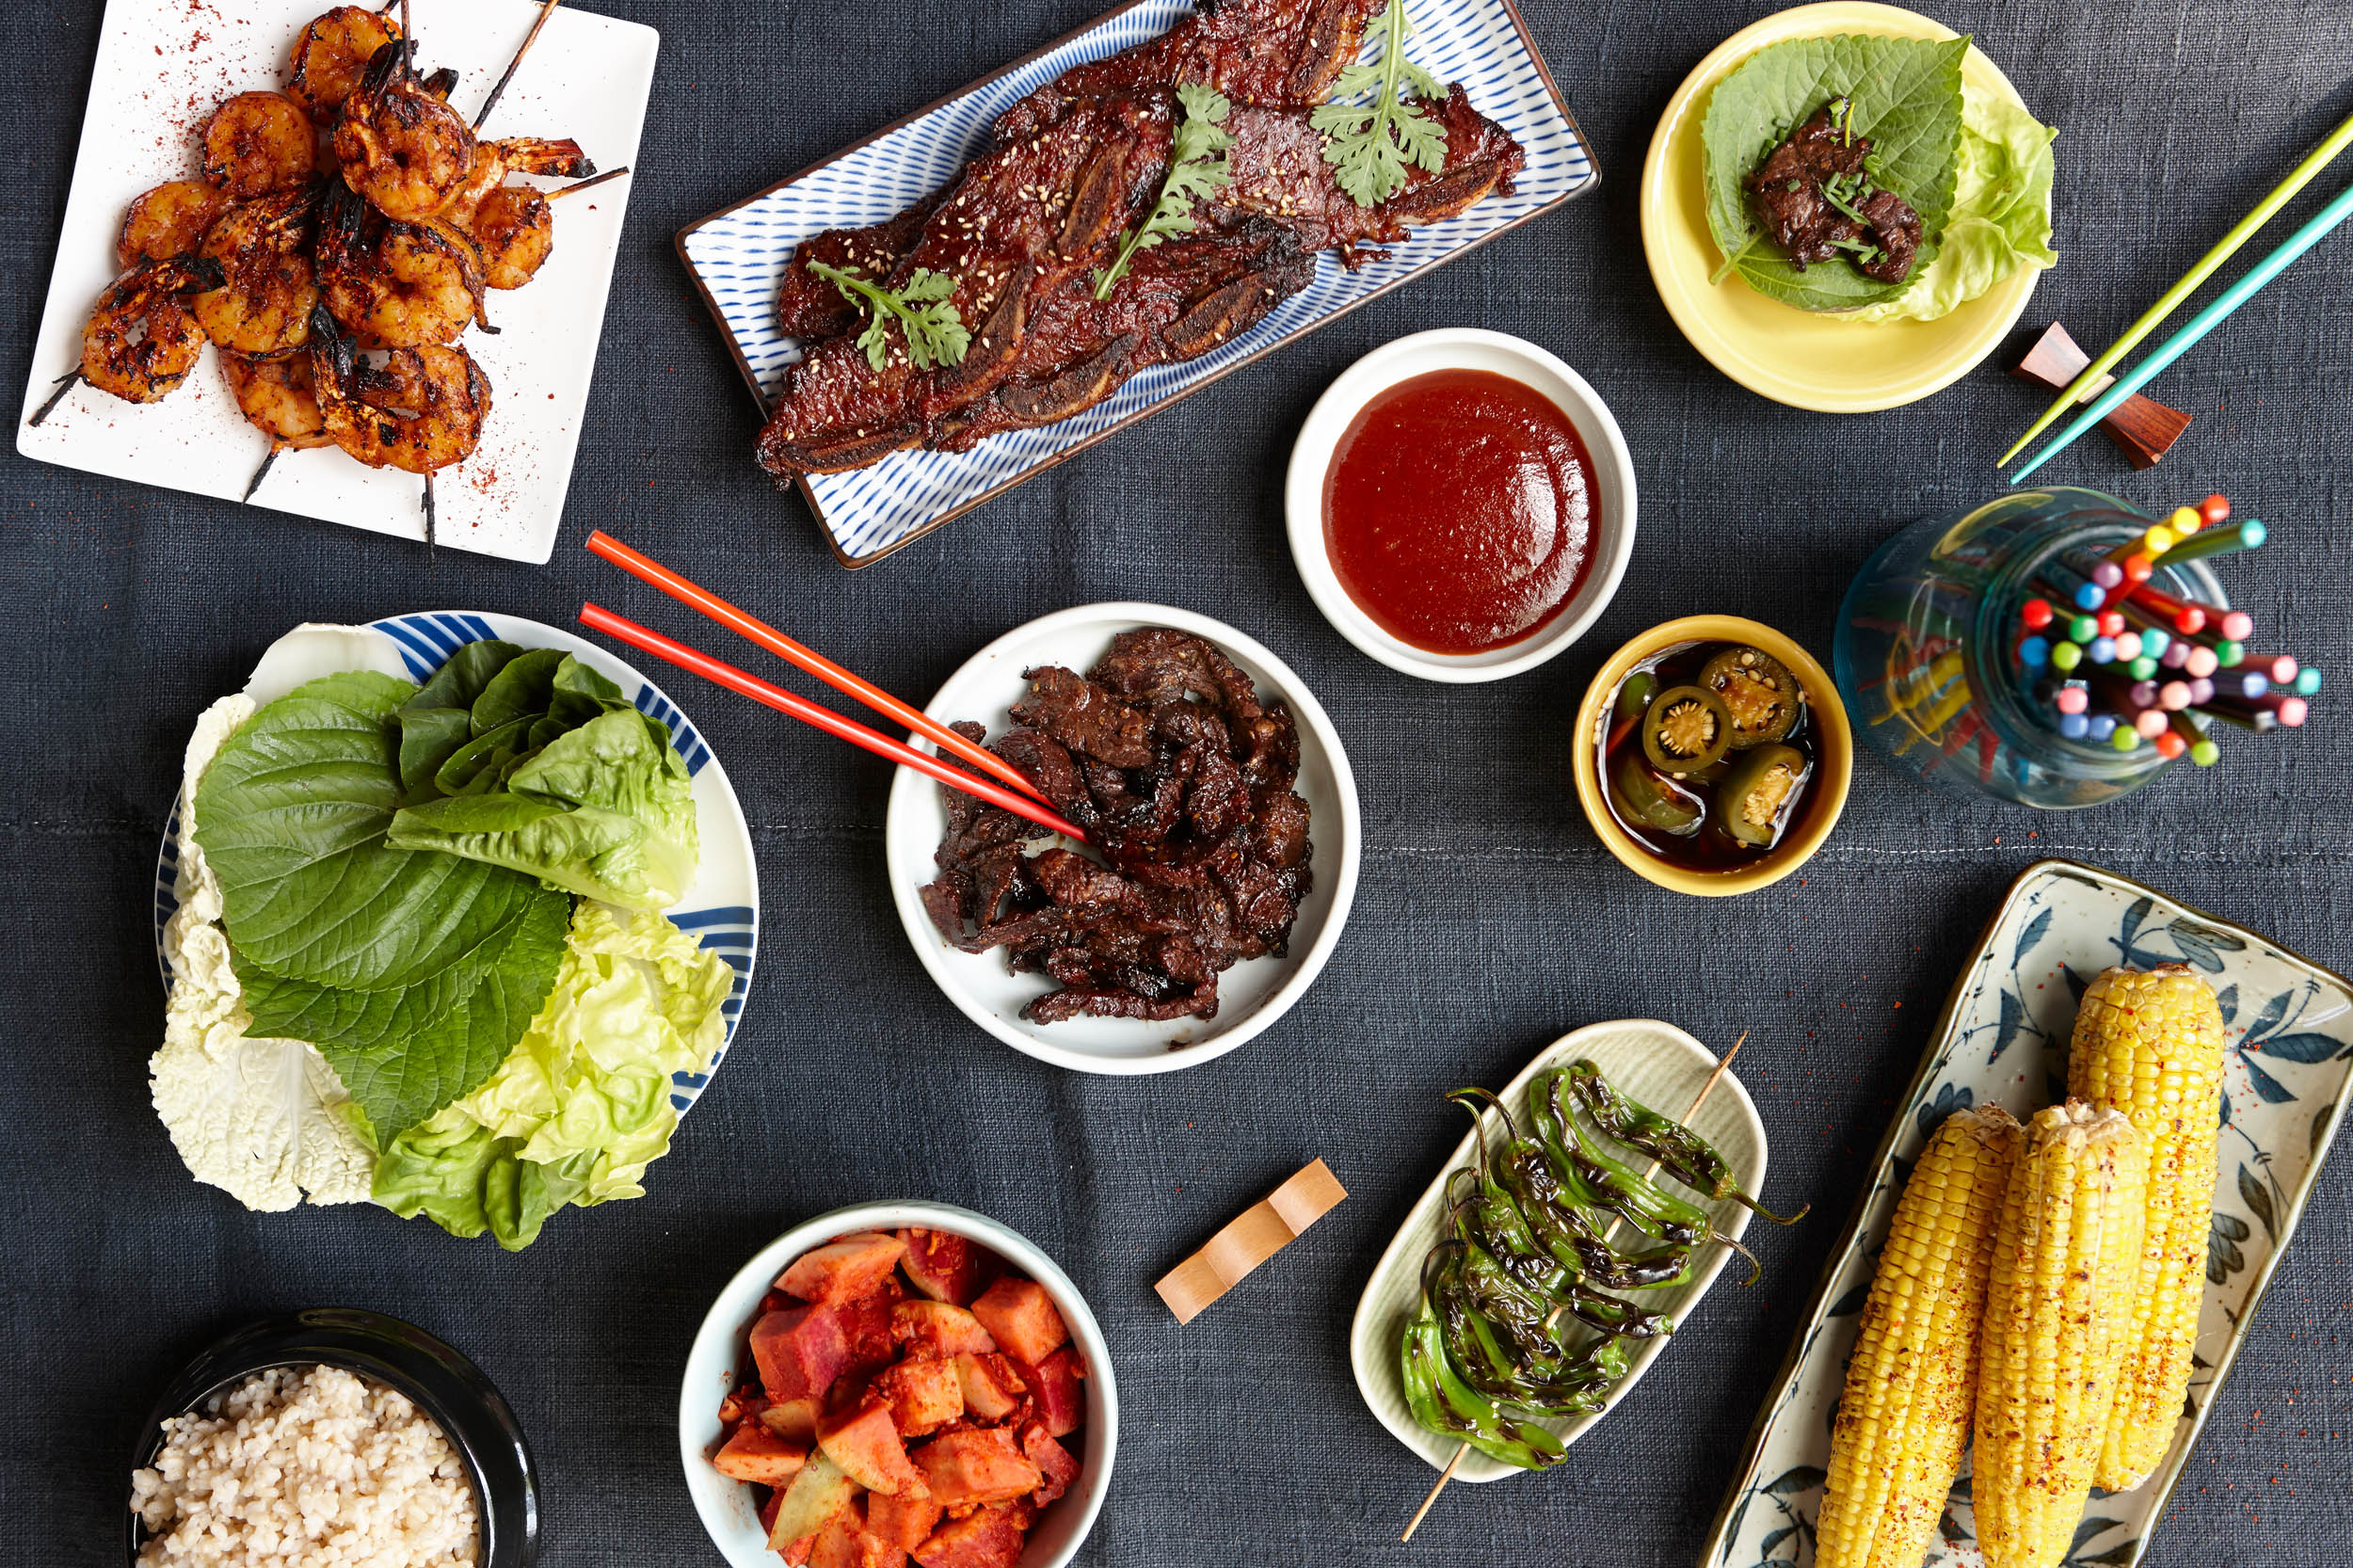 A overview of a Korean BBQ spread - Food photography